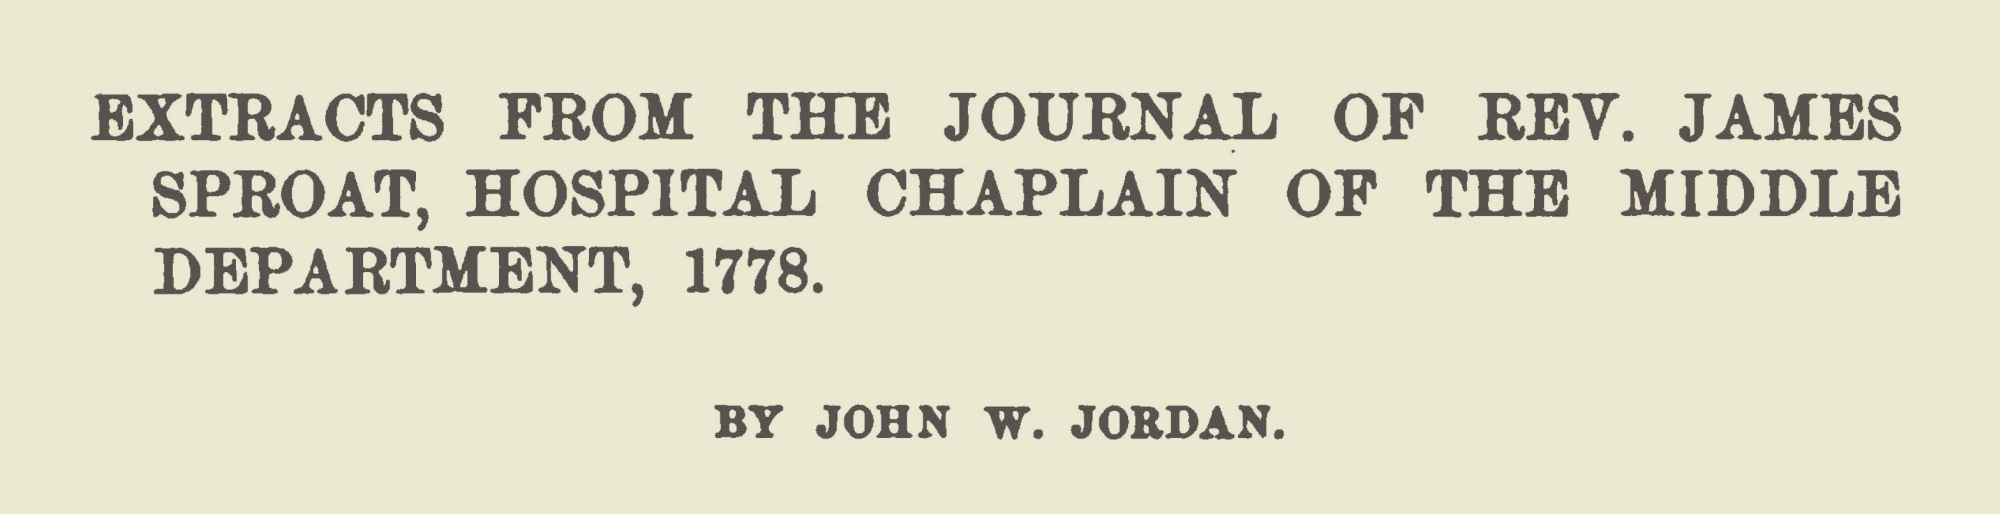 Sproat, James, Extracts From the Journal of Rev. James Sproat Title Page.jpg